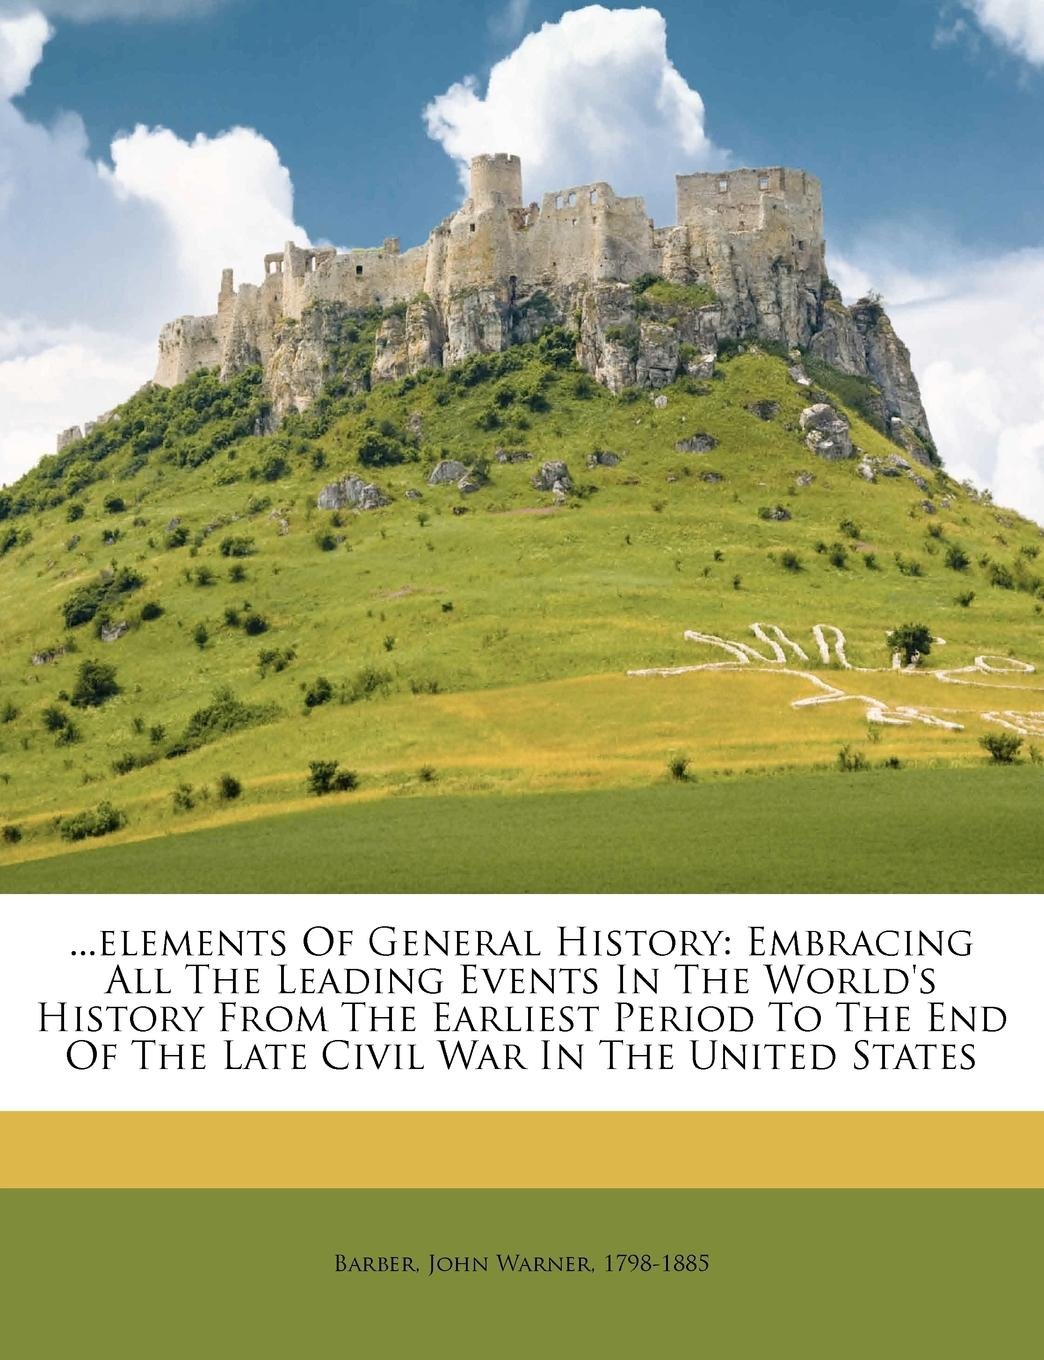 Read Online ...Elements of general history: embracing all the leading events in the world's history from the earliest period to the end of the late civil war in the United States ebook